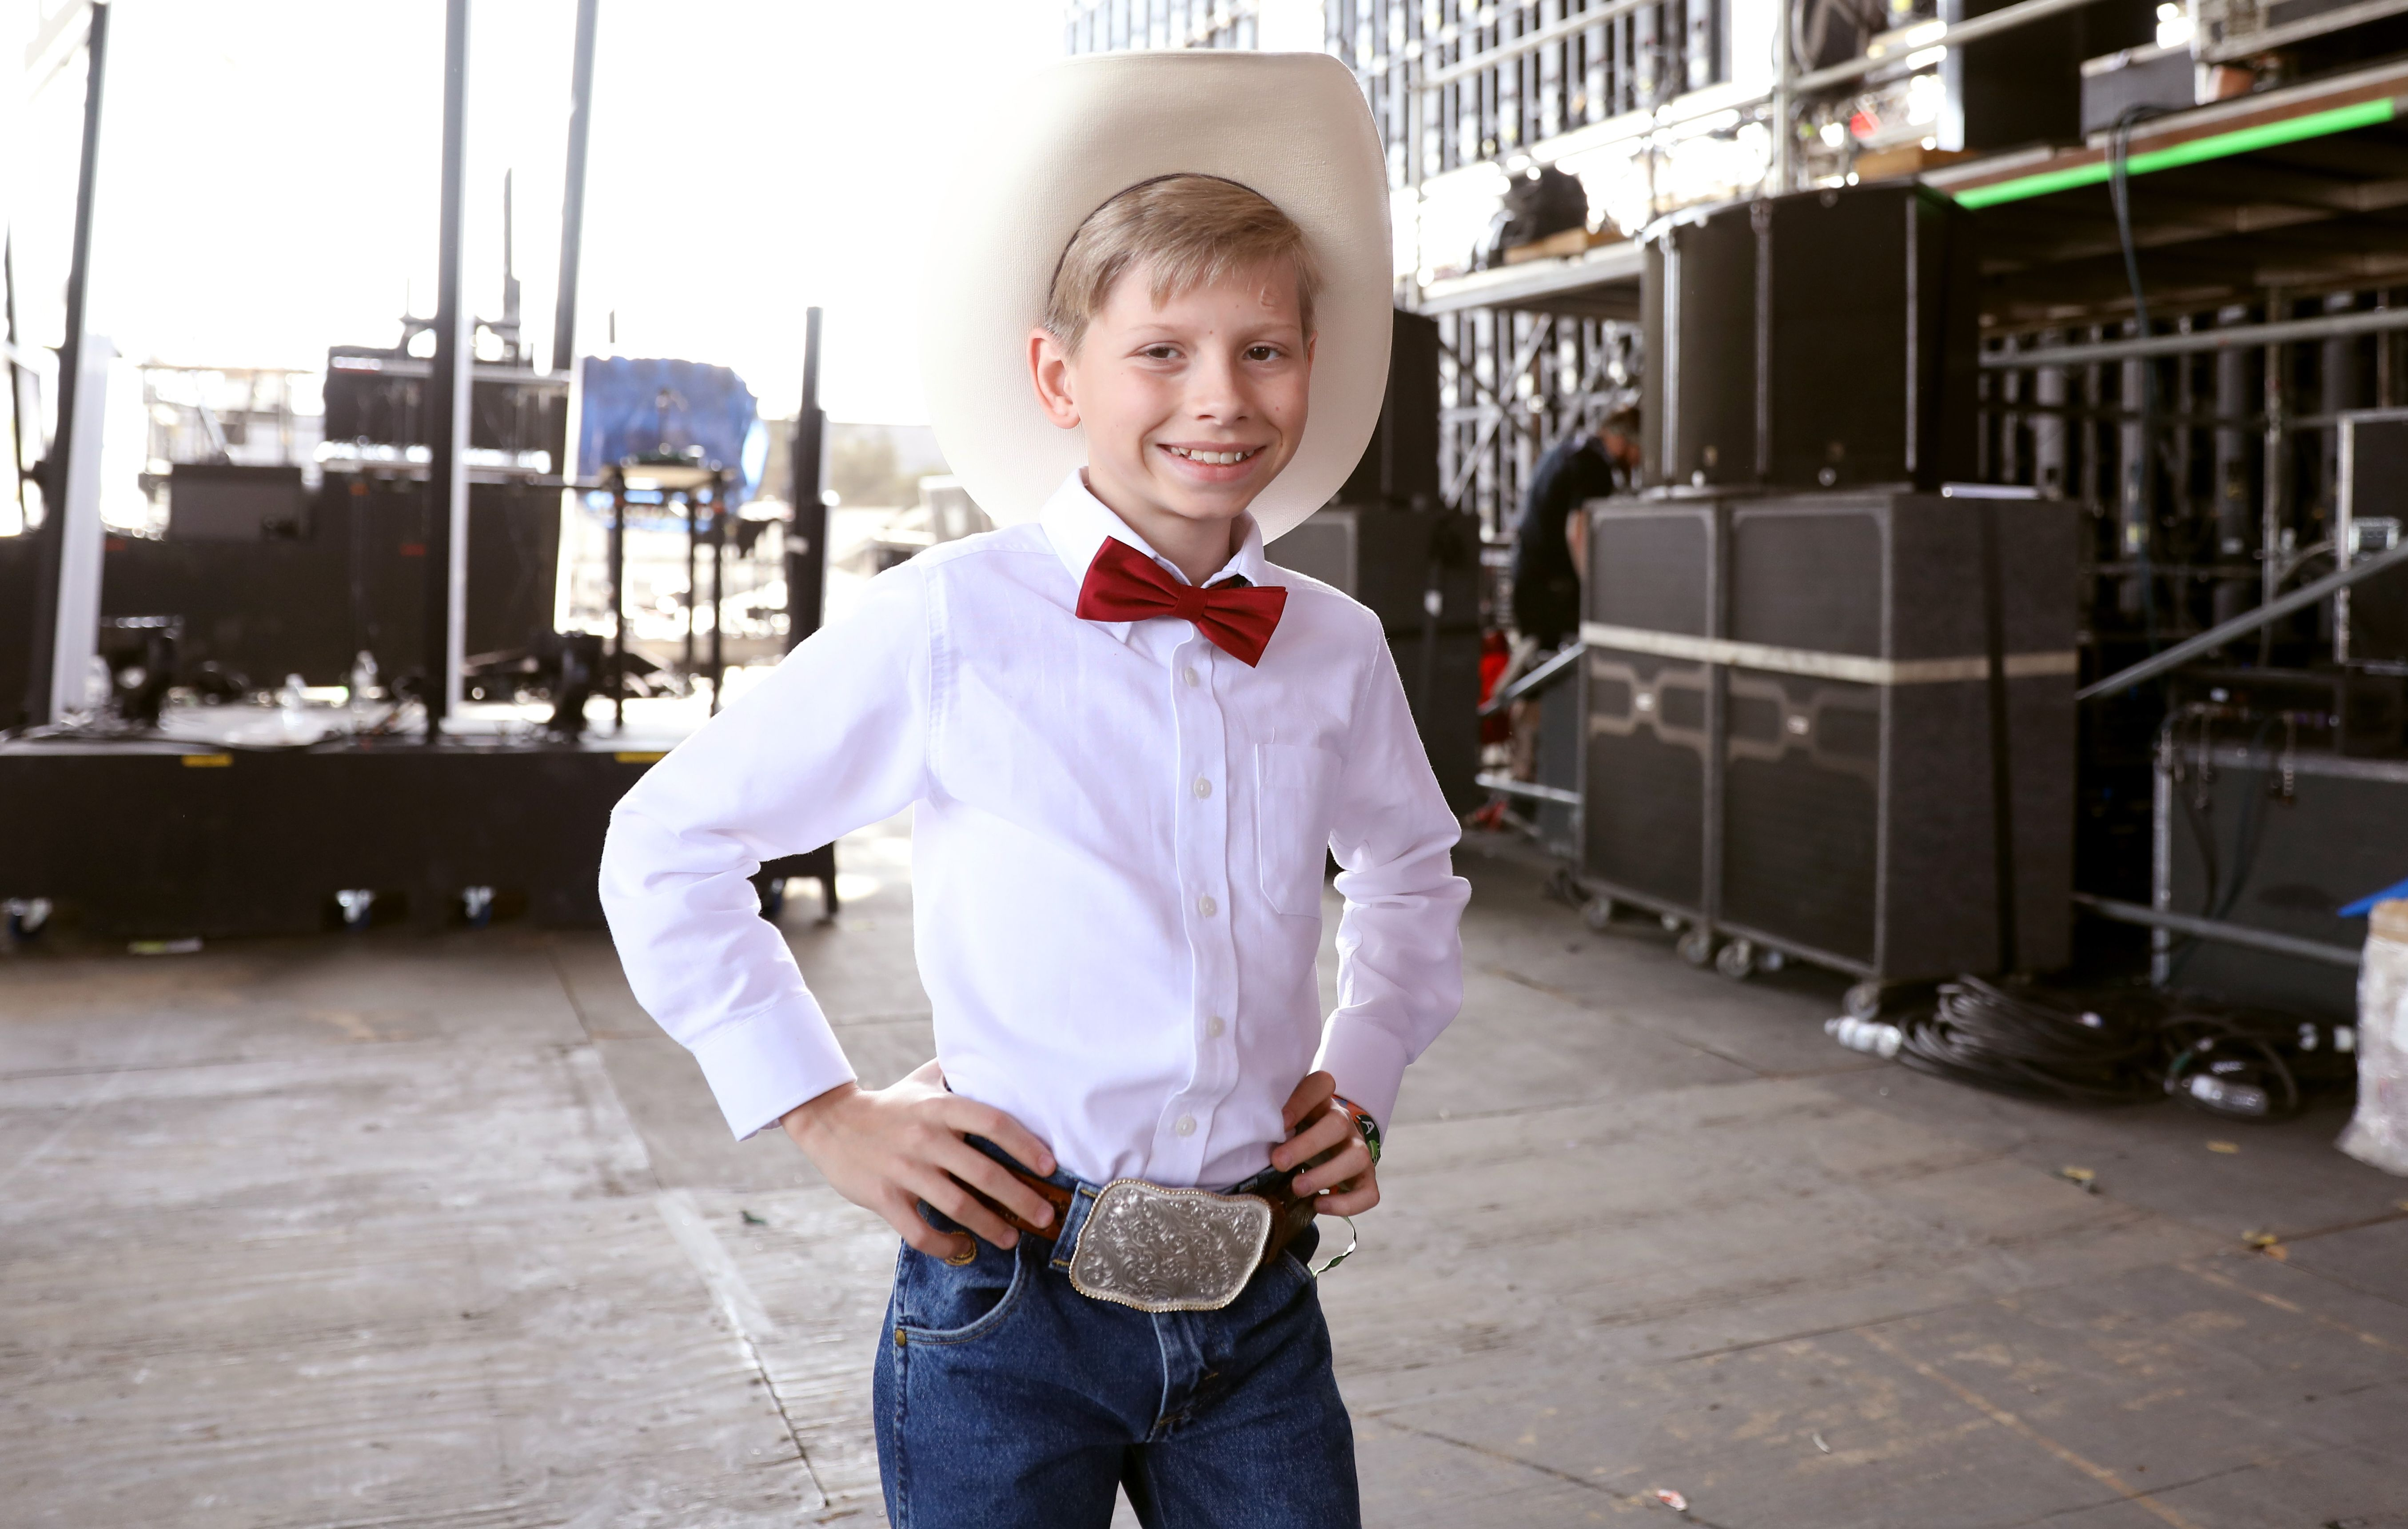 Walmart Yodeling Kid Has A New Single Out And Was Signed